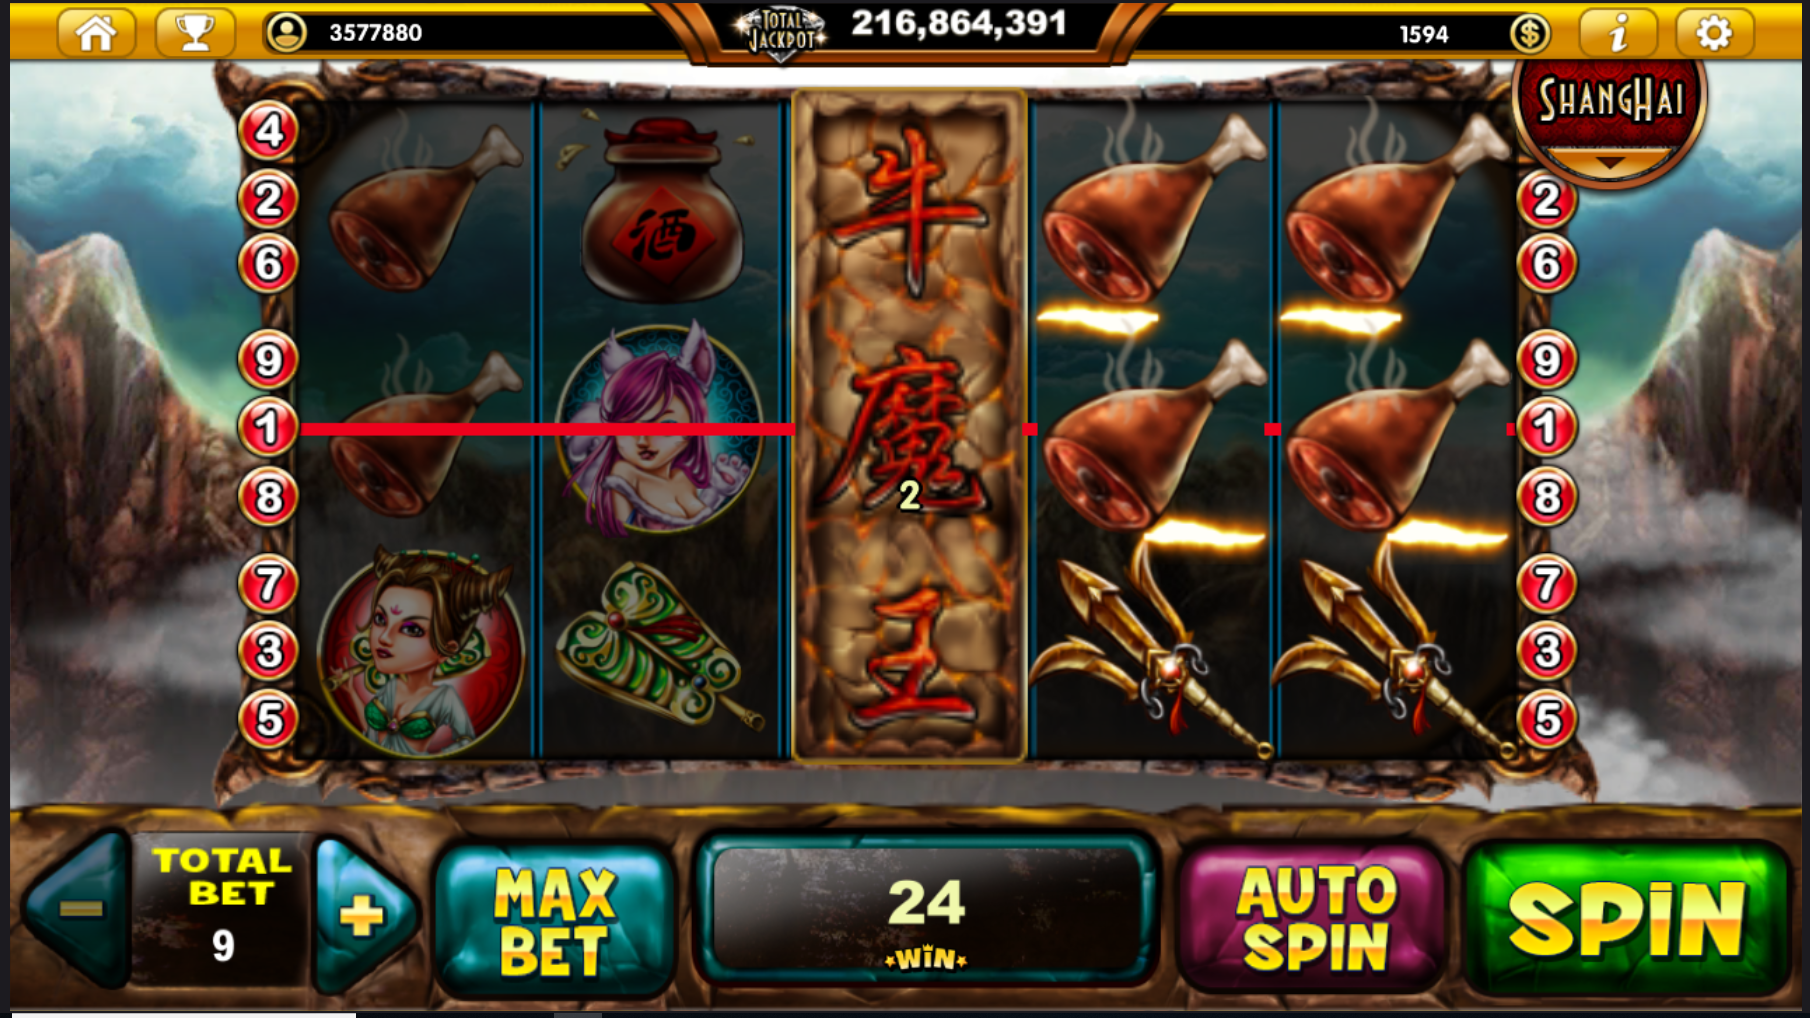 Live22 Live Casino Games And Slot Games